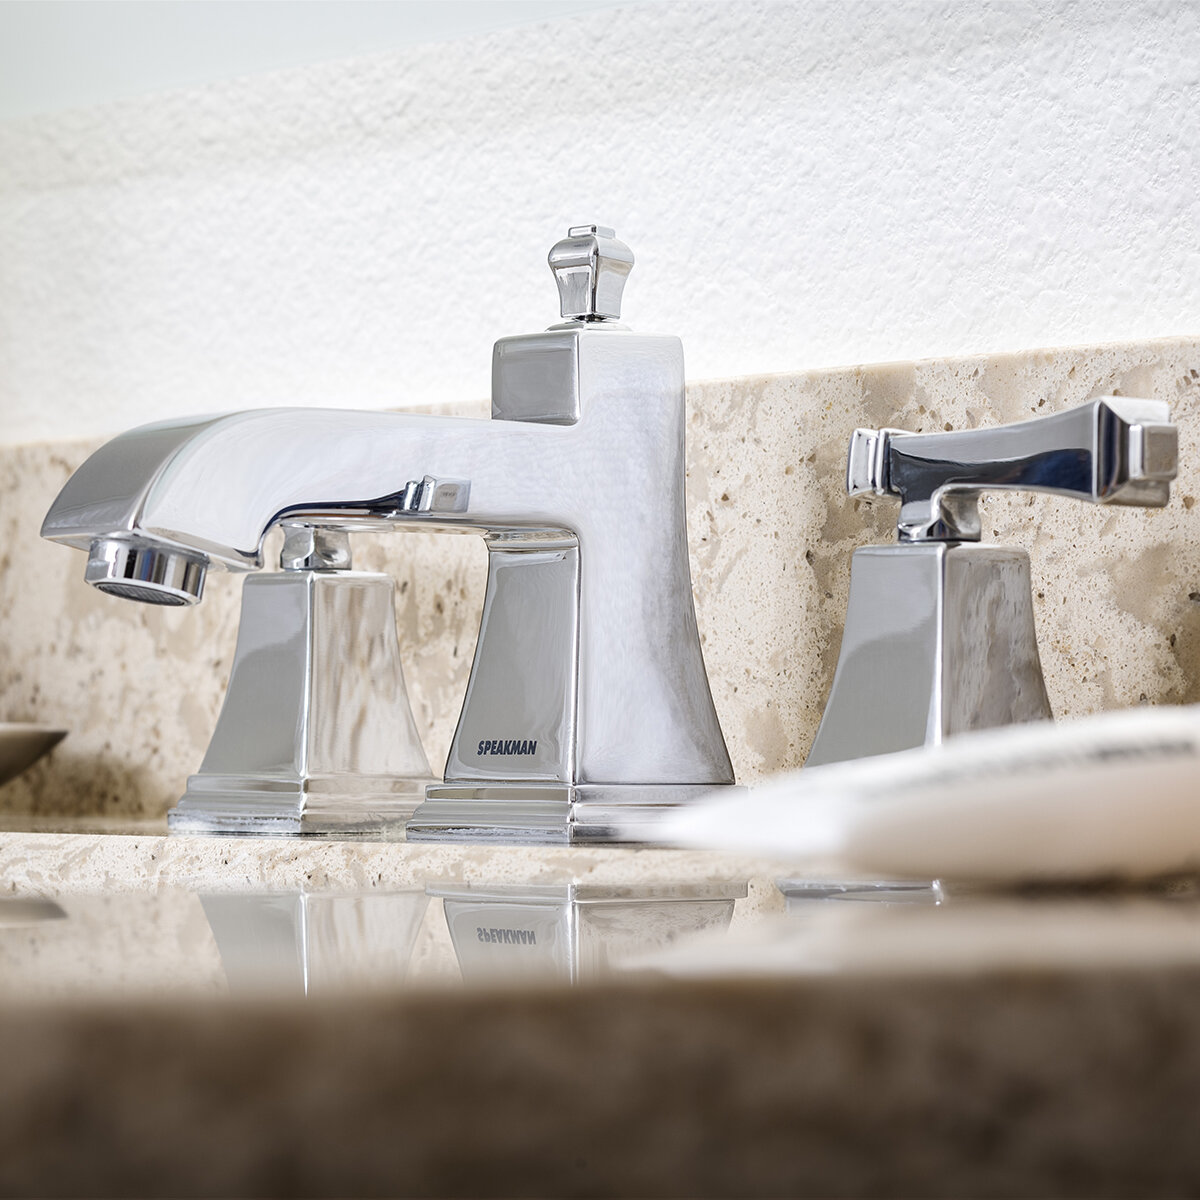 faucets wayfair reviews faucet caspian bathroom widespread pdx home speakman improvement